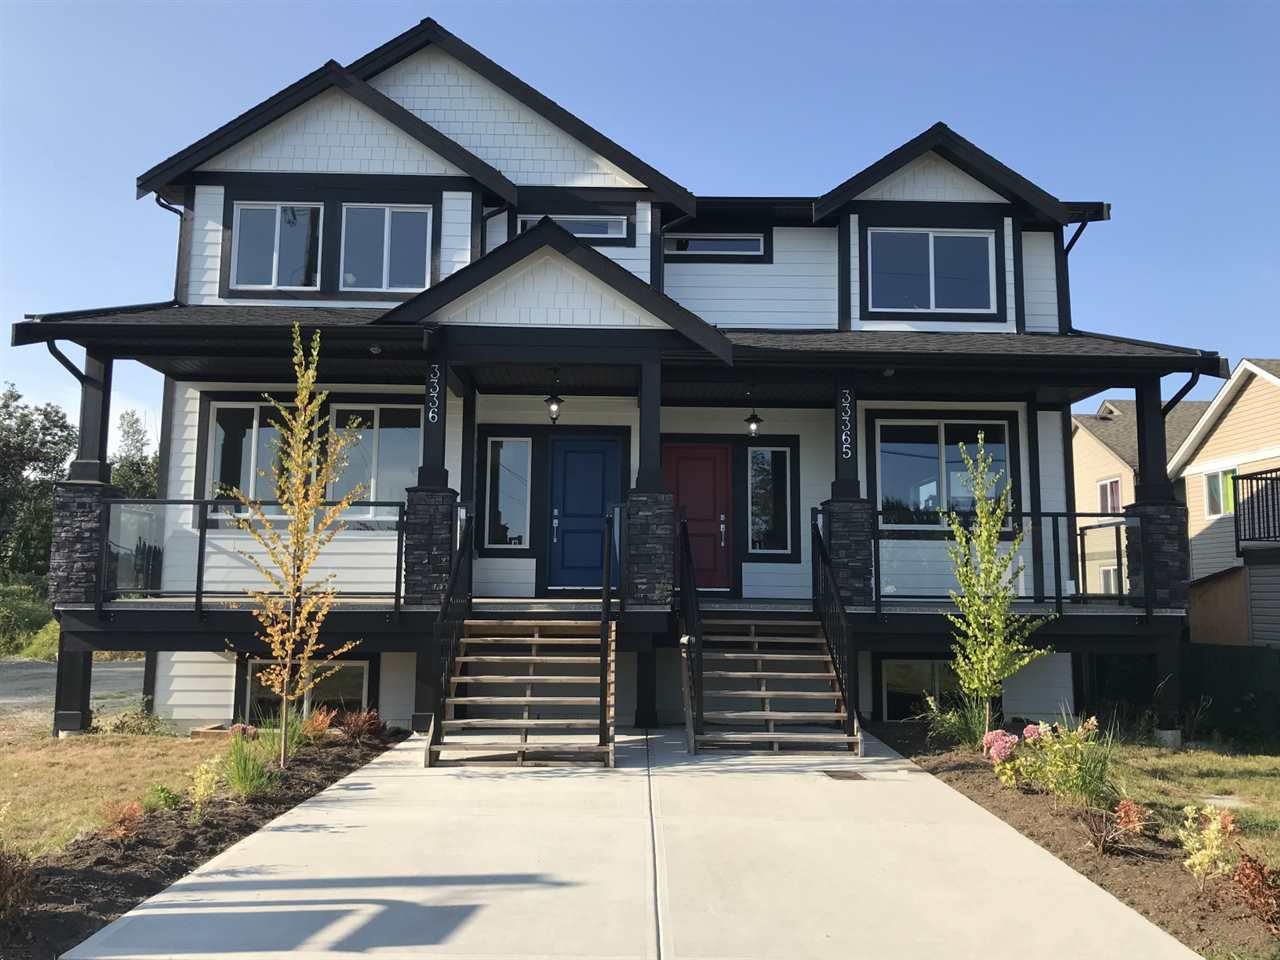 Main Photo: A 33365 5TH Avenue in Mission: Mission BC 1/2 Duplex for sale : MLS®# R2430022